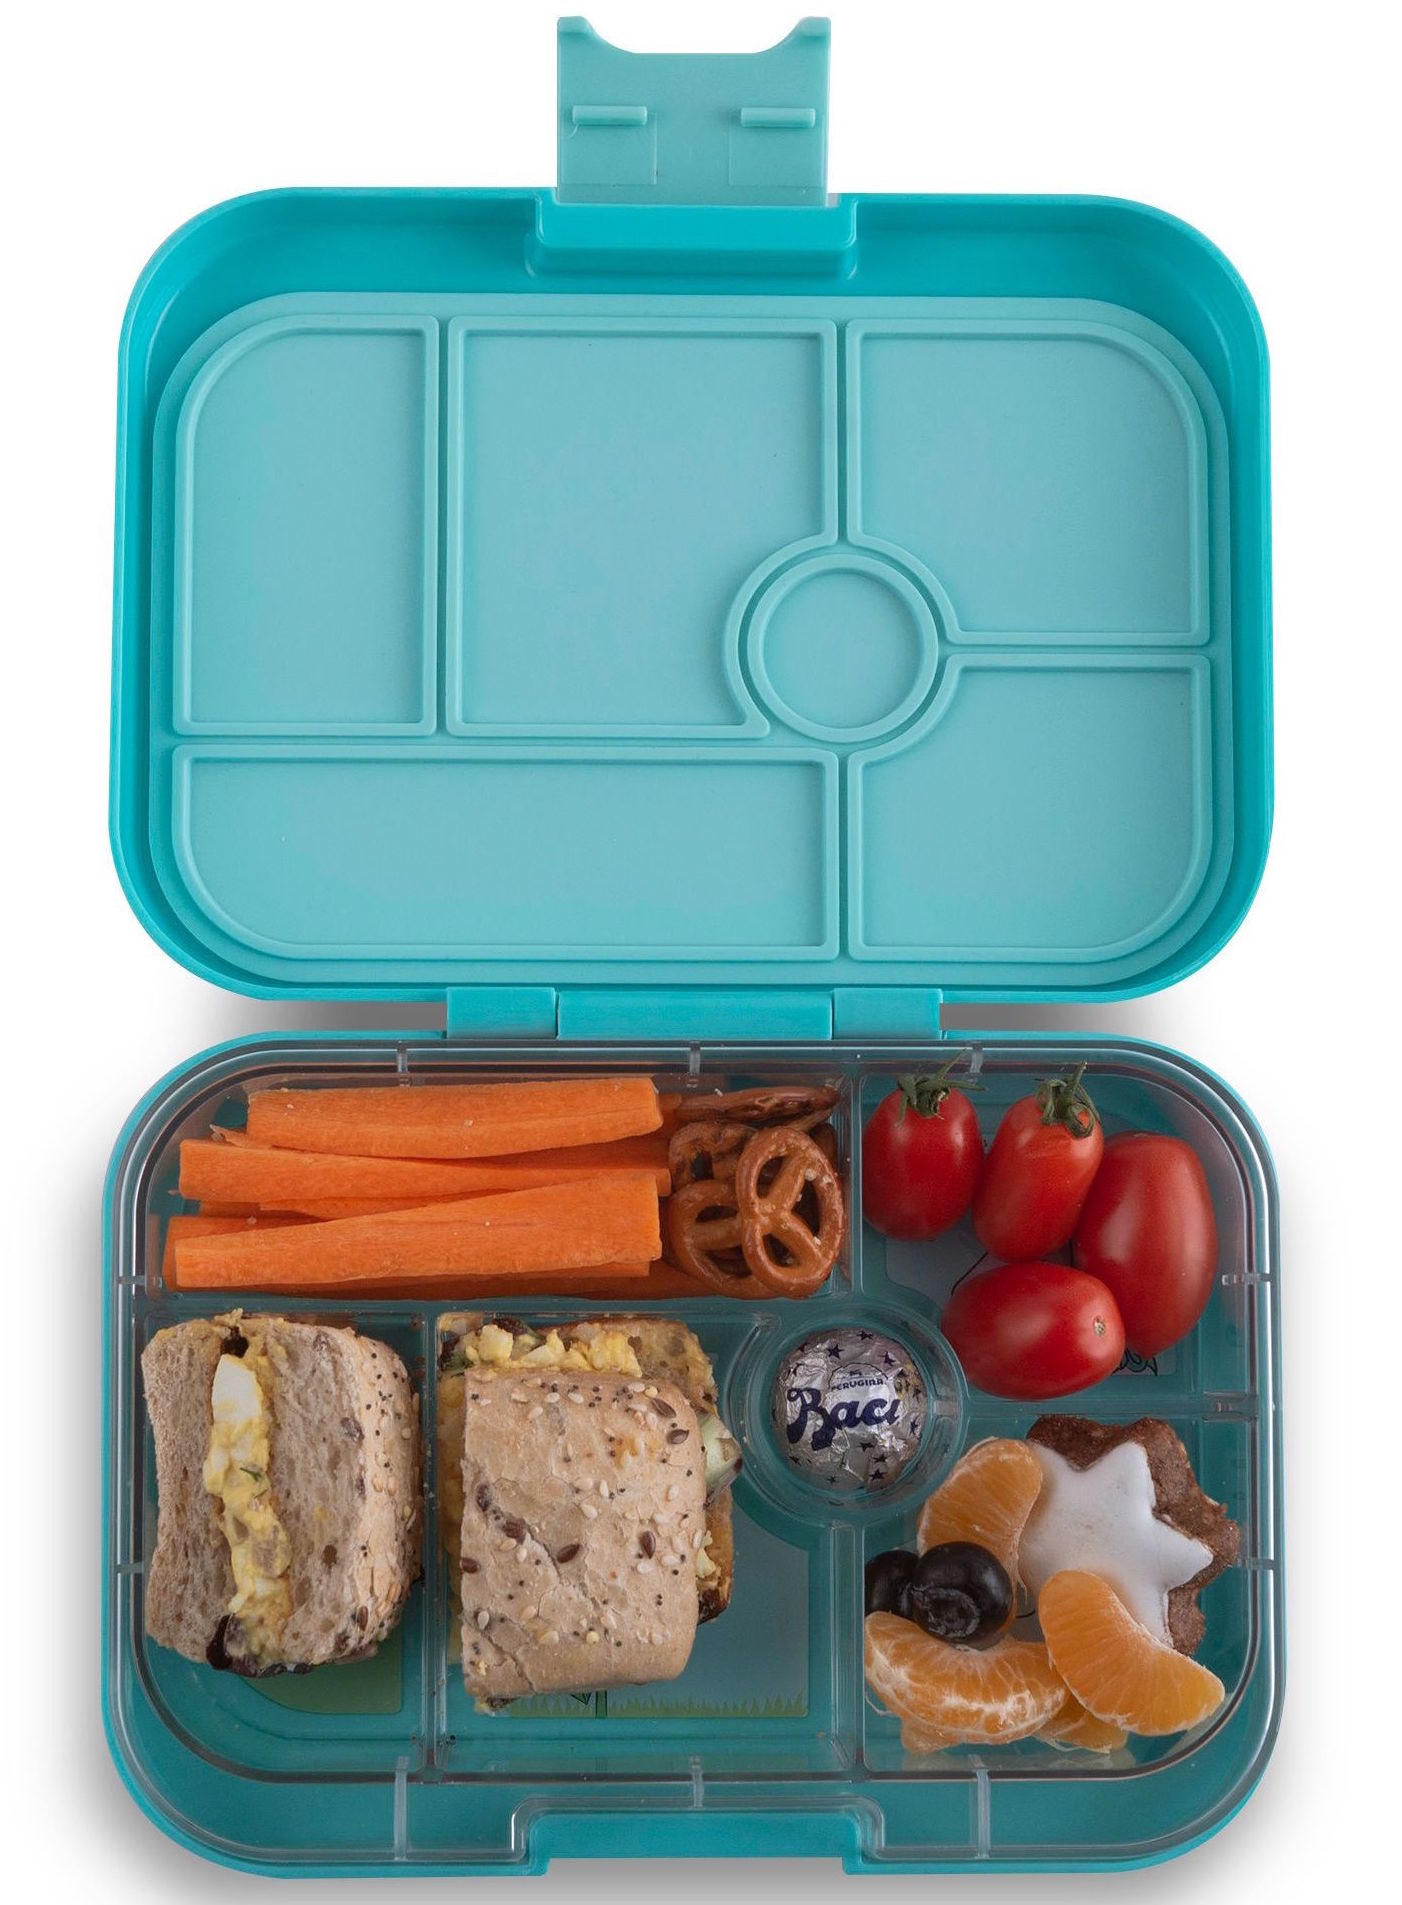 Yumbox Original 6-vakken Misty aqua / Unicorn tray-2